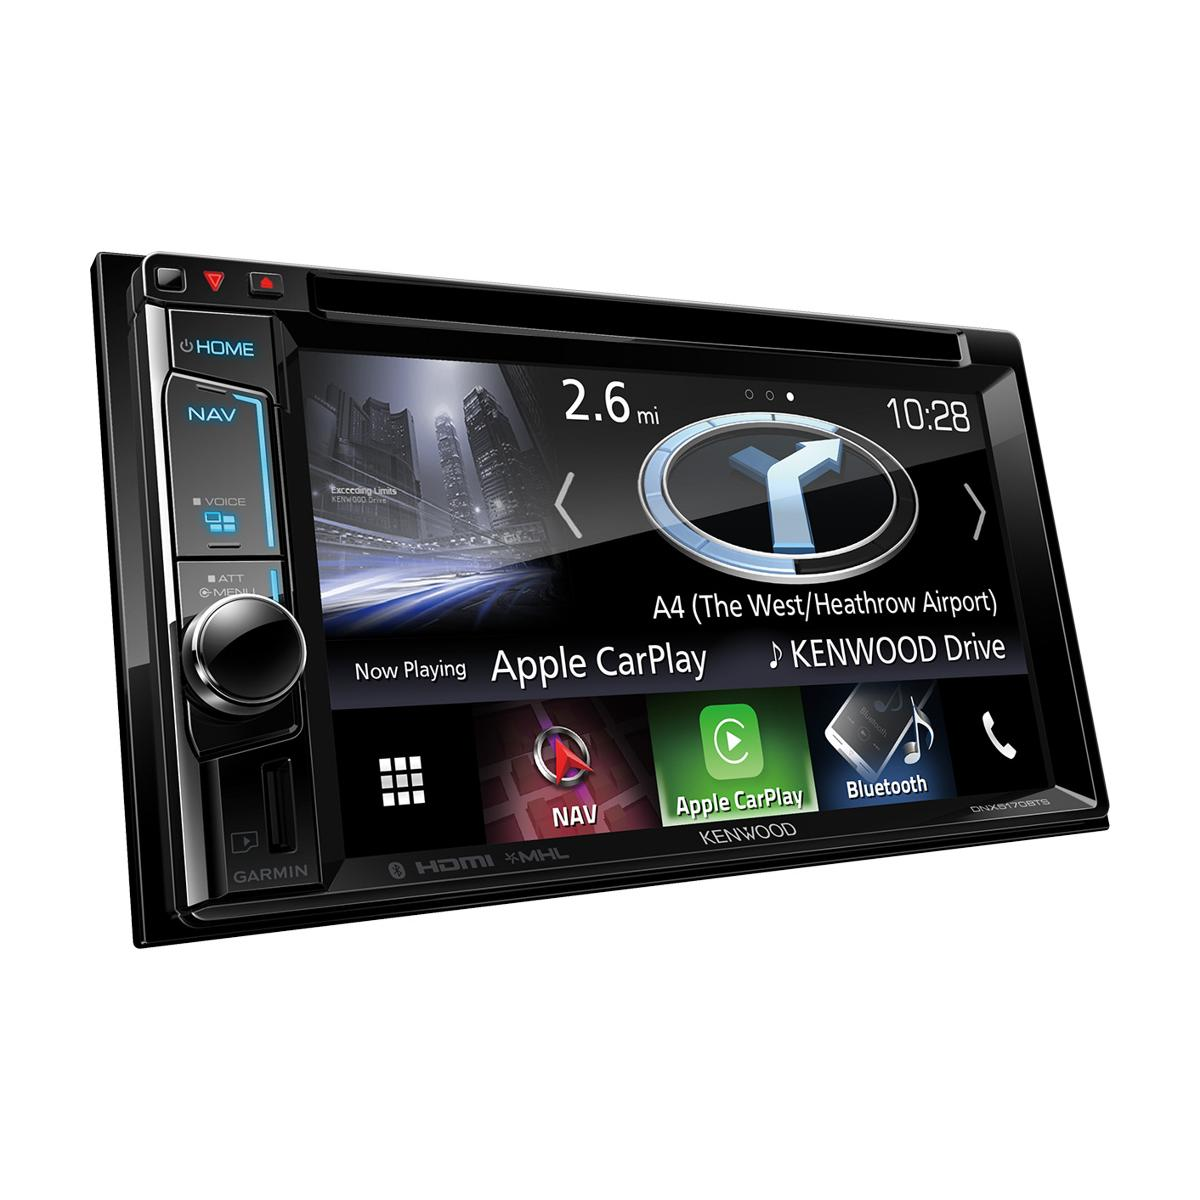 In Car Sat Nav Kenwood Car Audio DNX-5170BTS